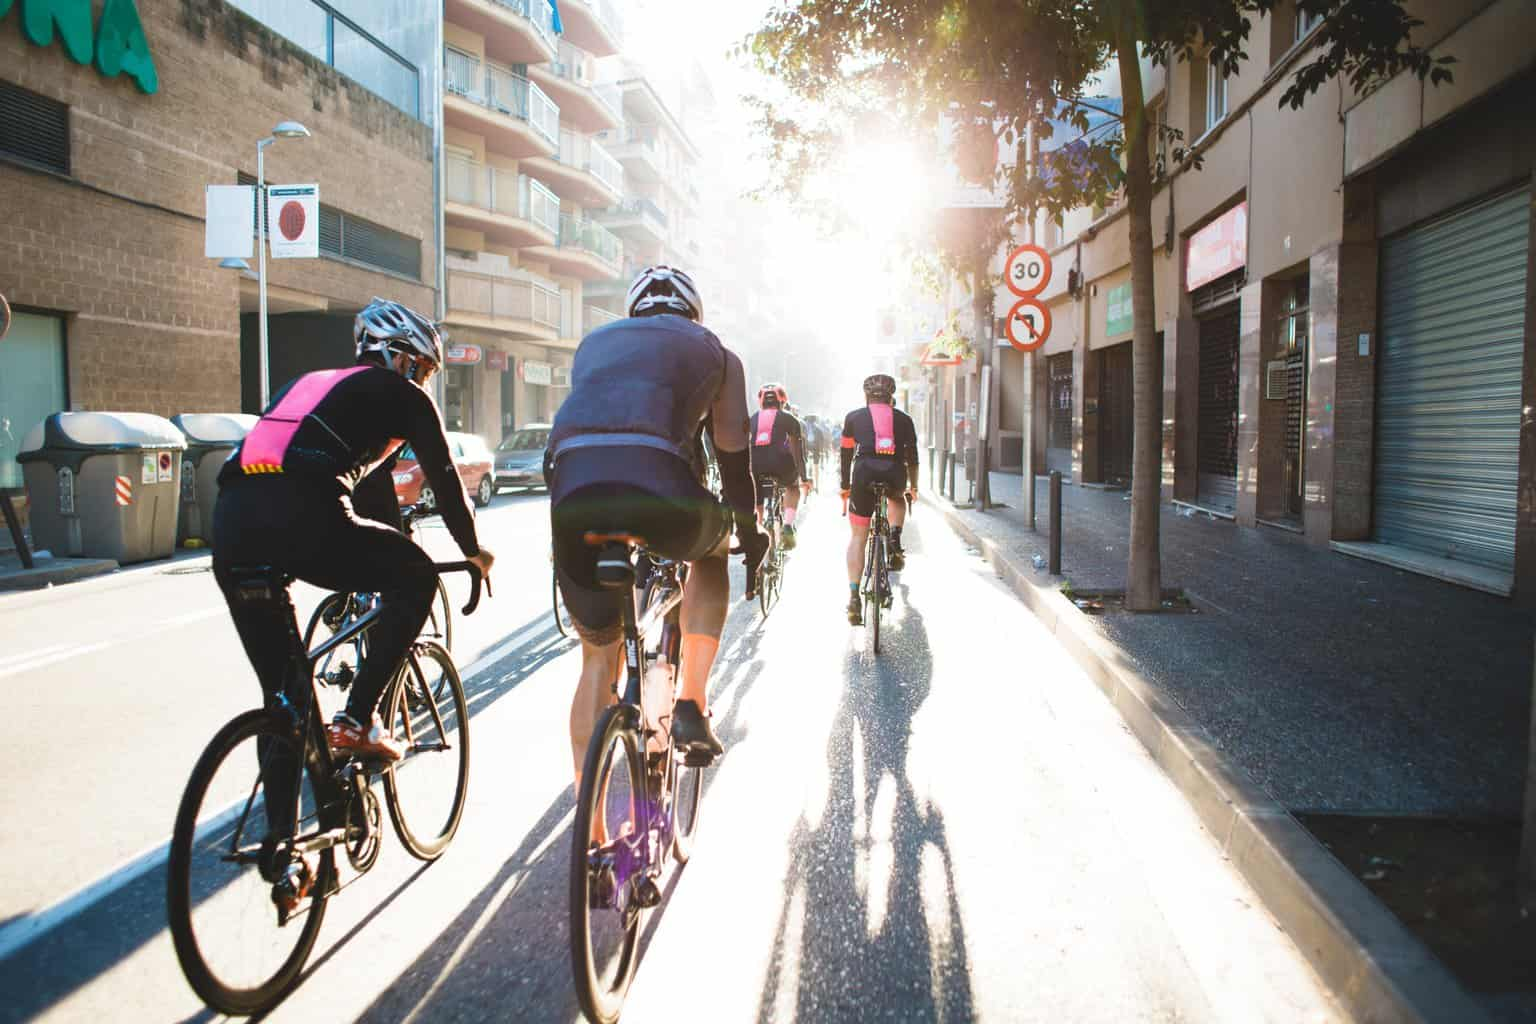 image of people cycling together